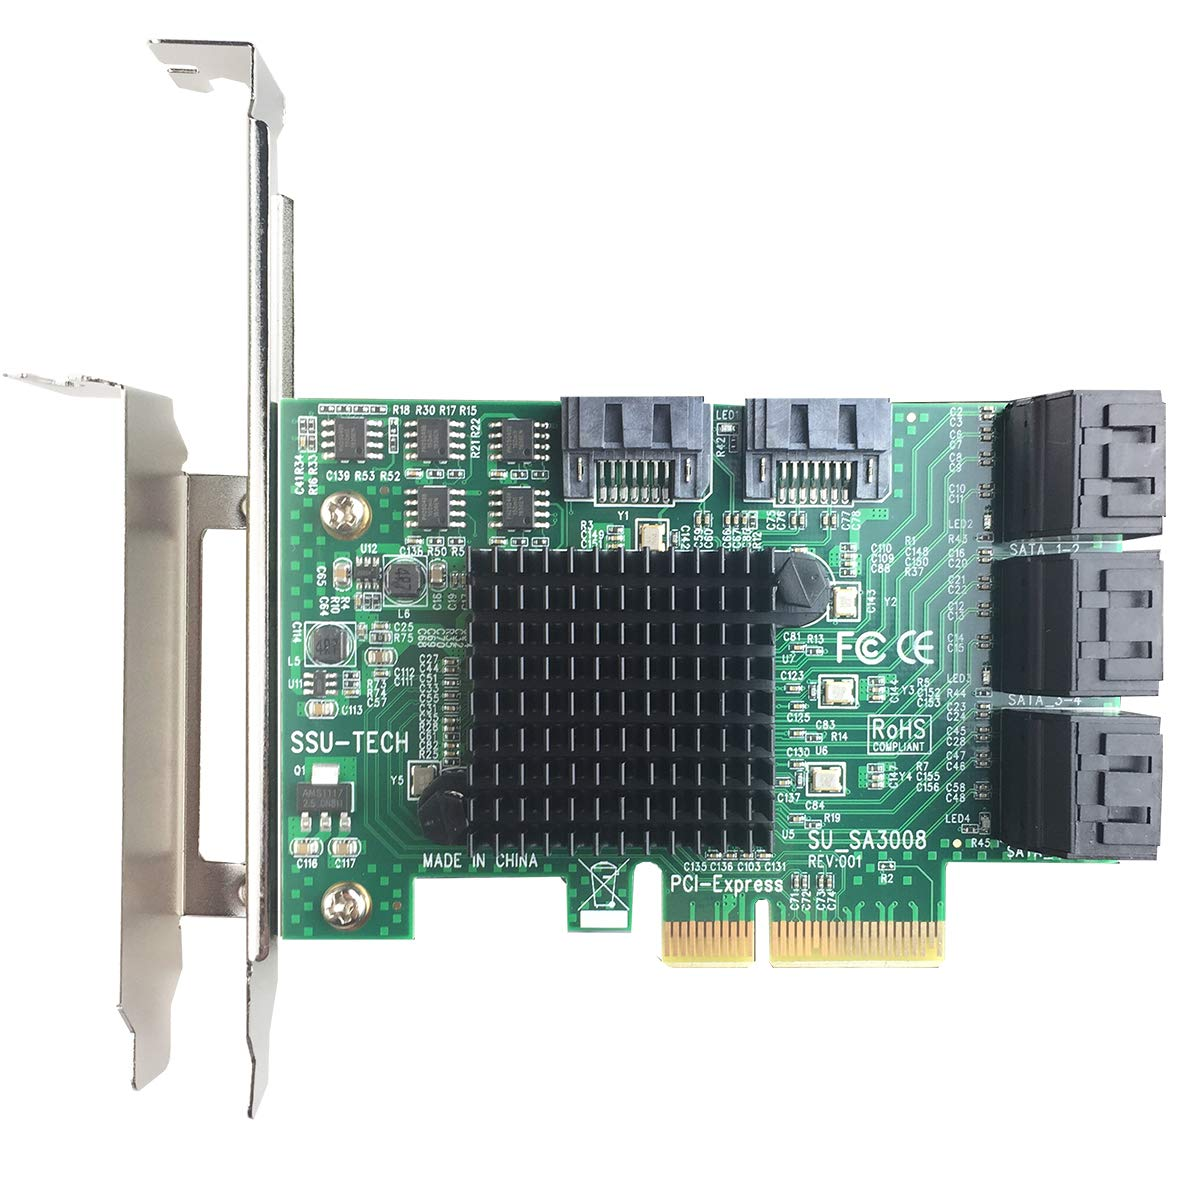 GLOTRENDS PCIe 2.0 X2 to SATA III 8 Ports Adapter Card (ASM Chipset) for IPFS Mining and Adding SATA 3.0 Devices (SA3008) by GLOTRENDS